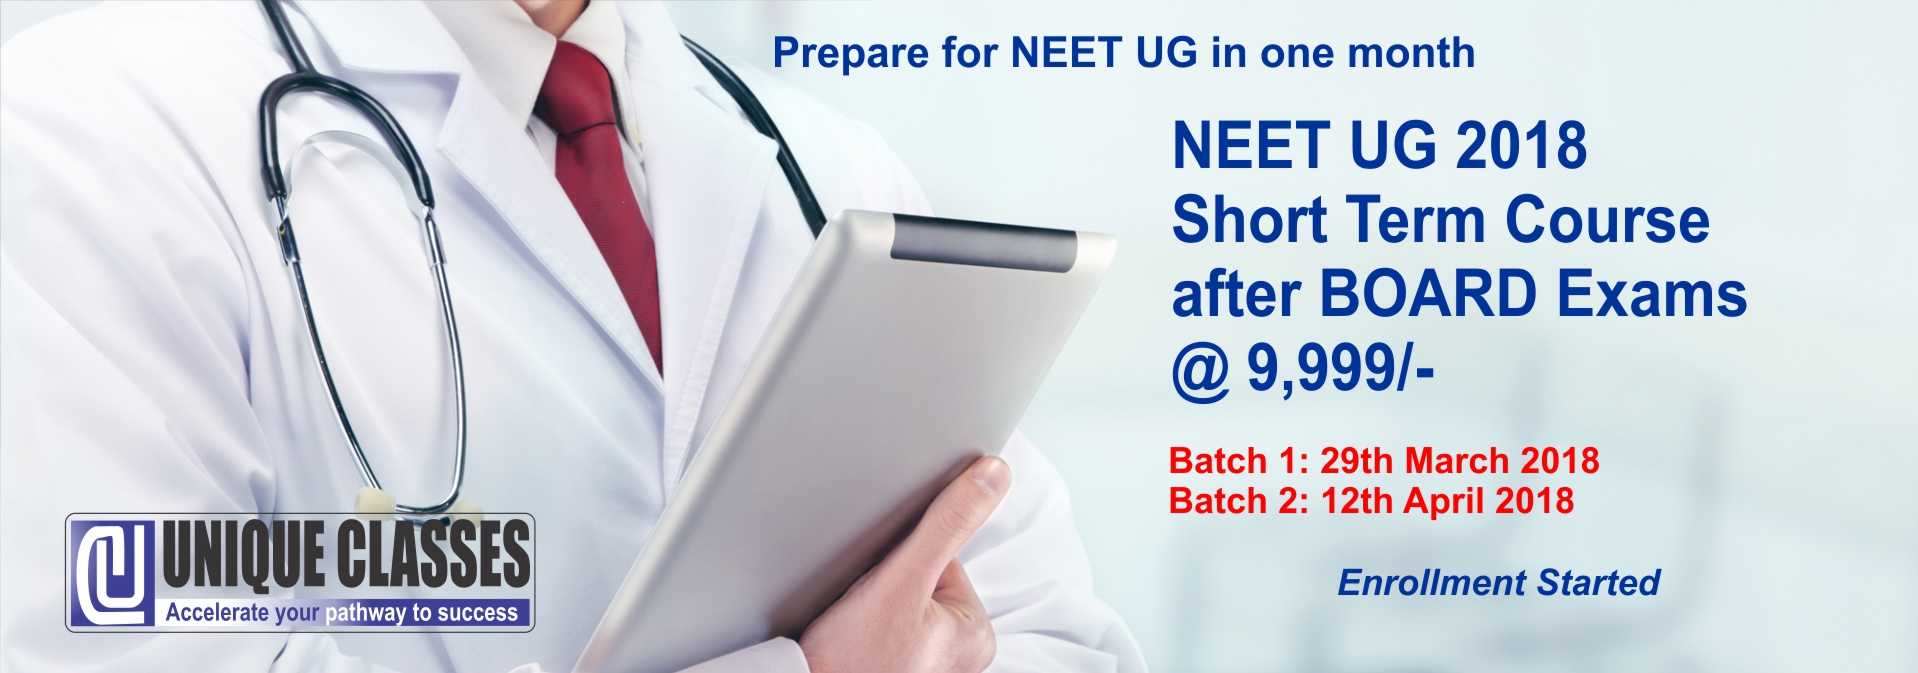 NEET UG 2018 Short Term Course